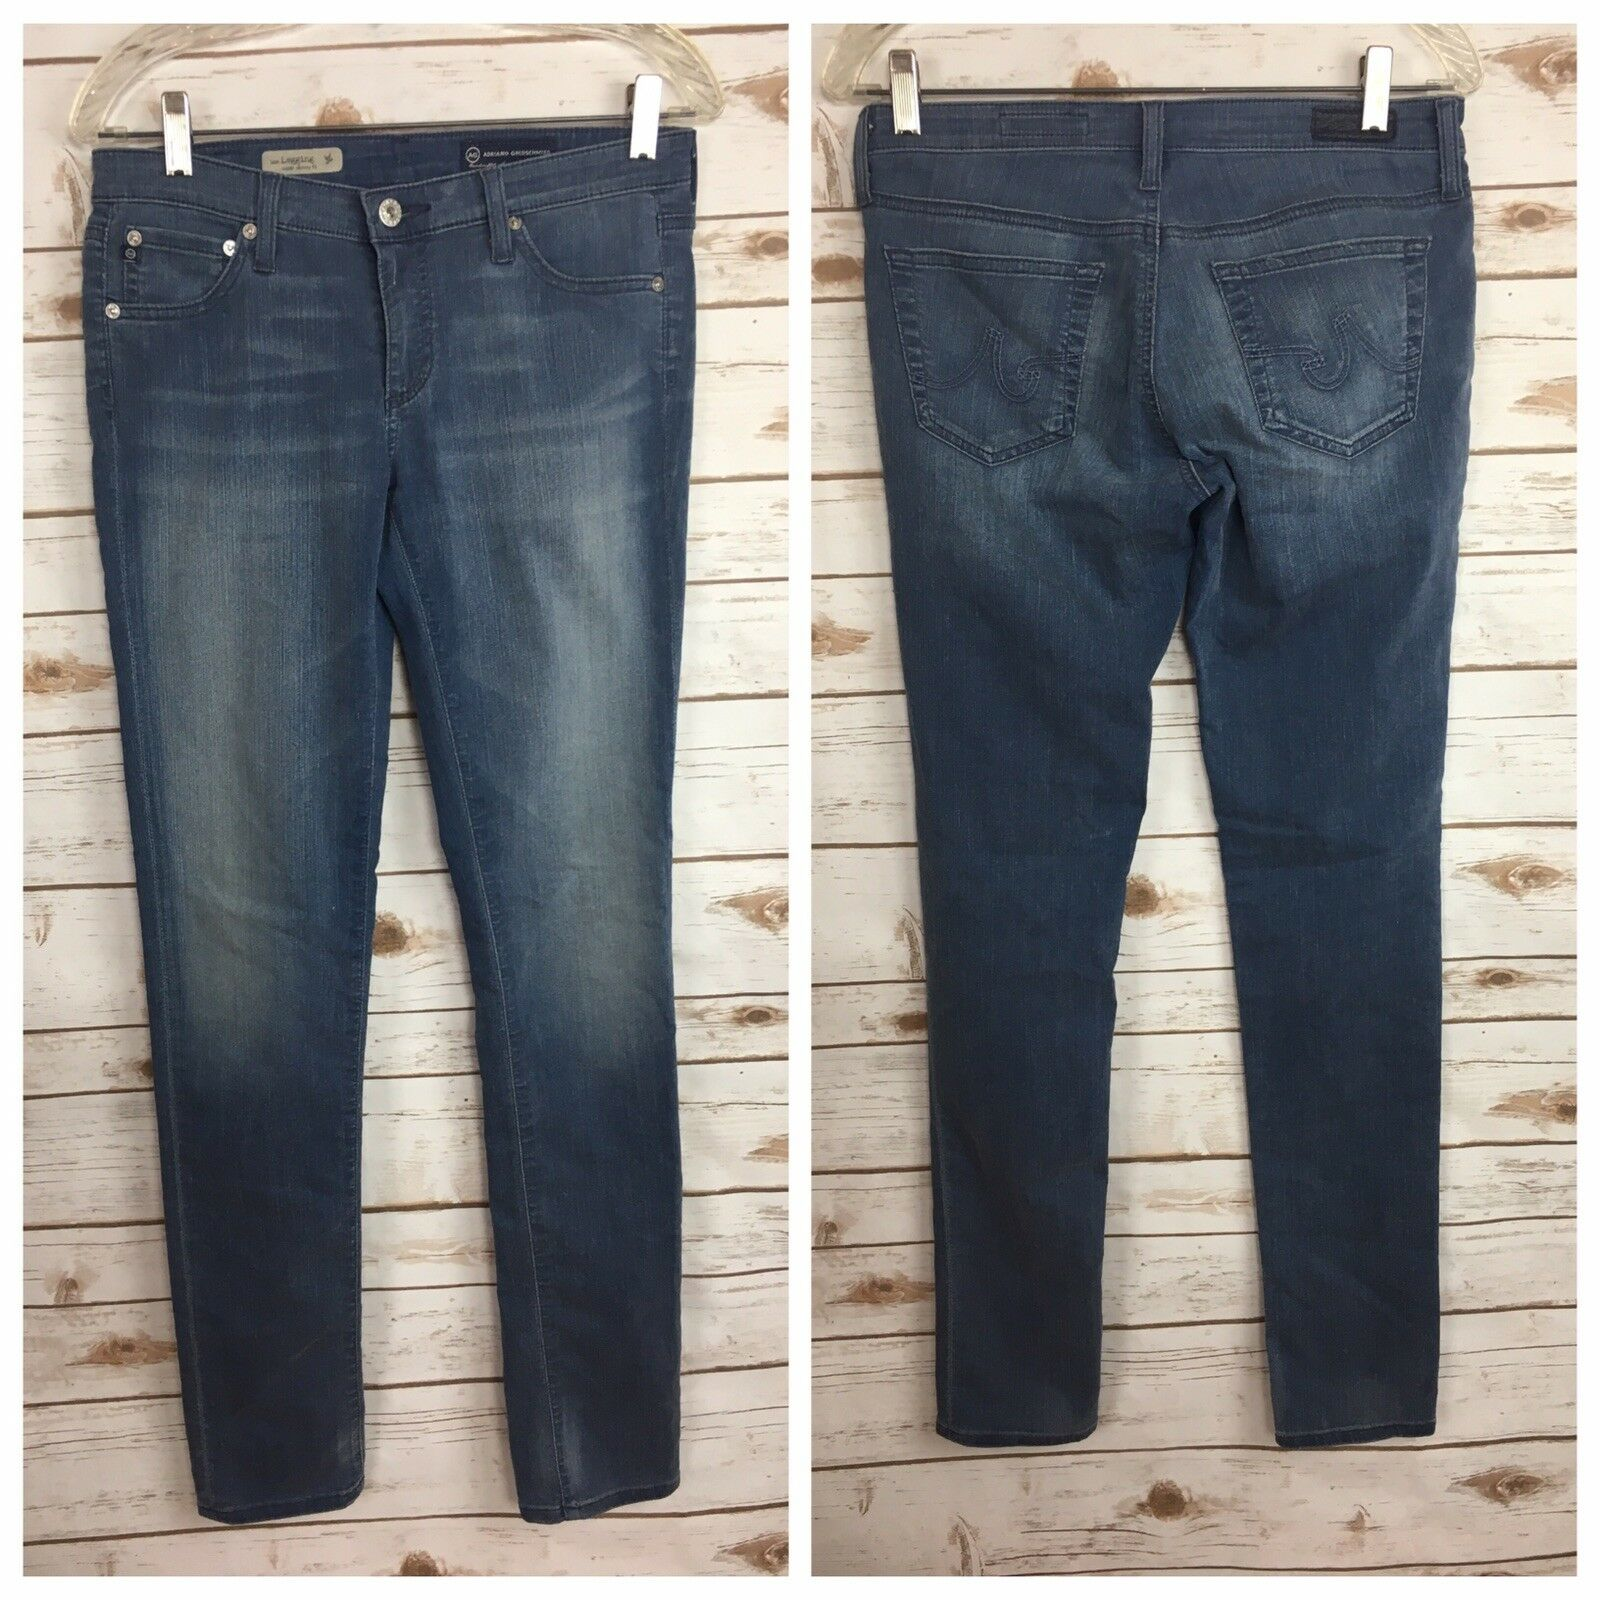 AG Adriano goldschmied The Legging Super Skinny Fit Size 27R